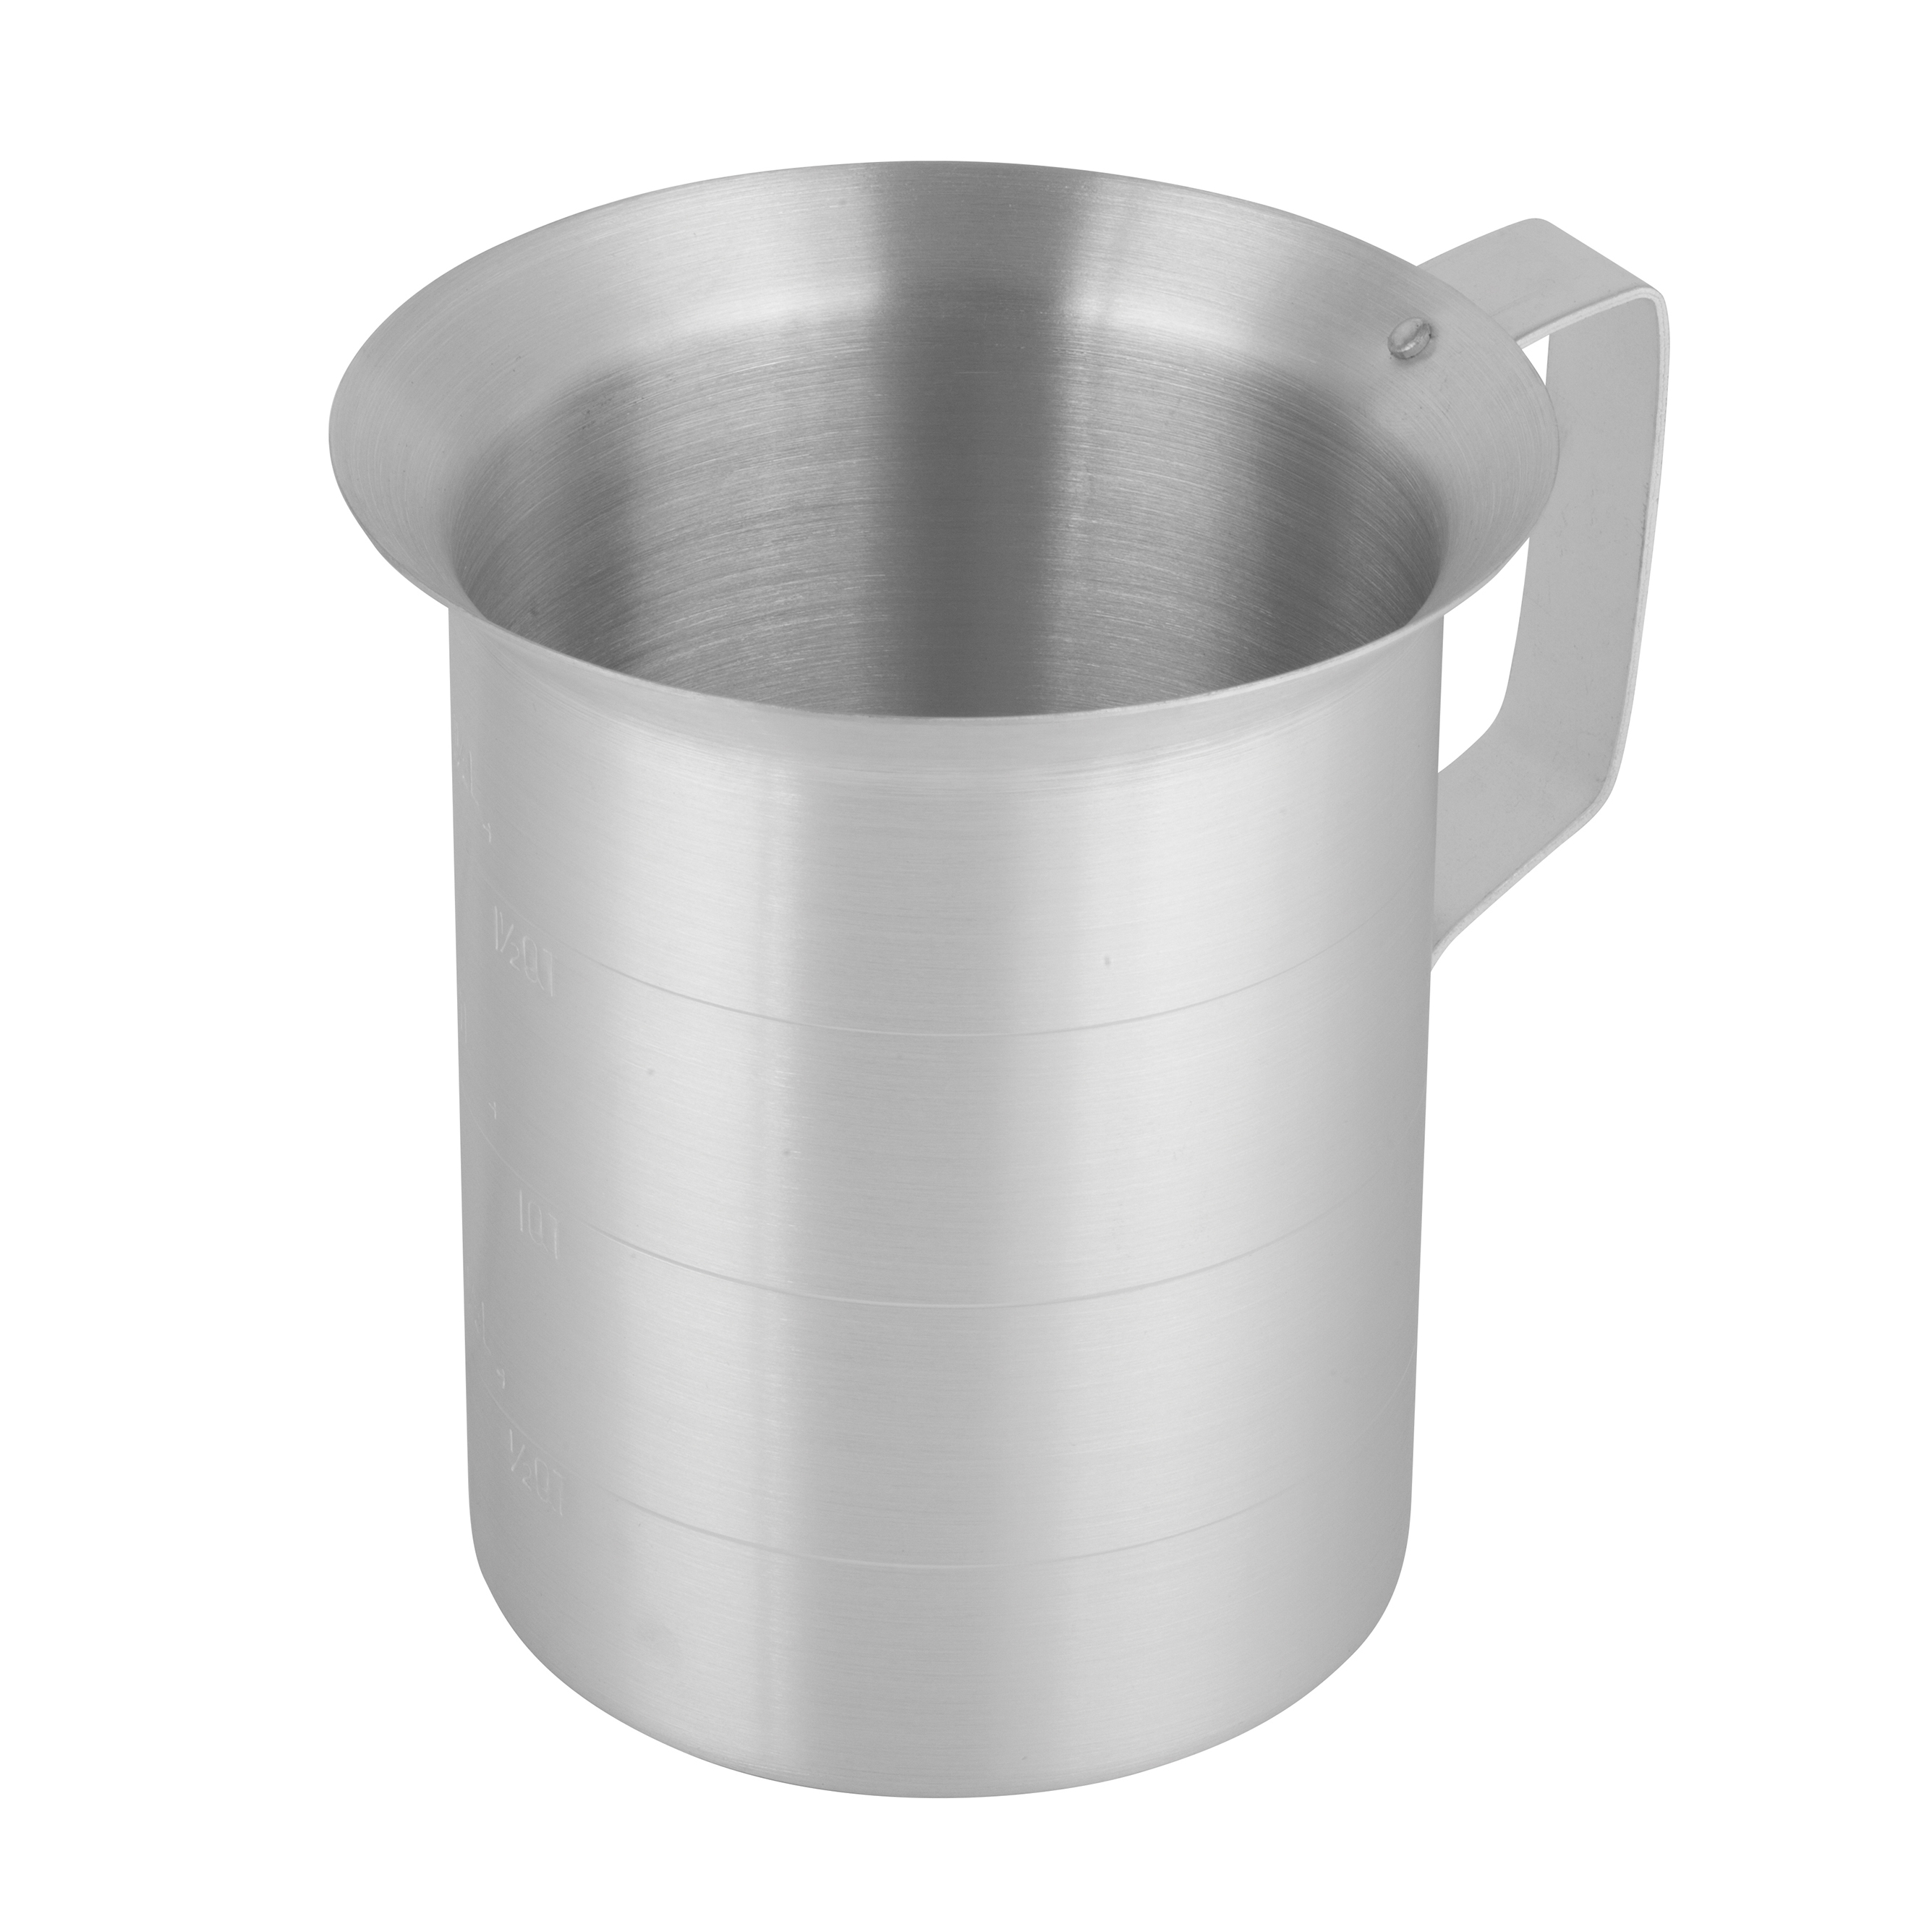 Winco AM-2 measuring cups